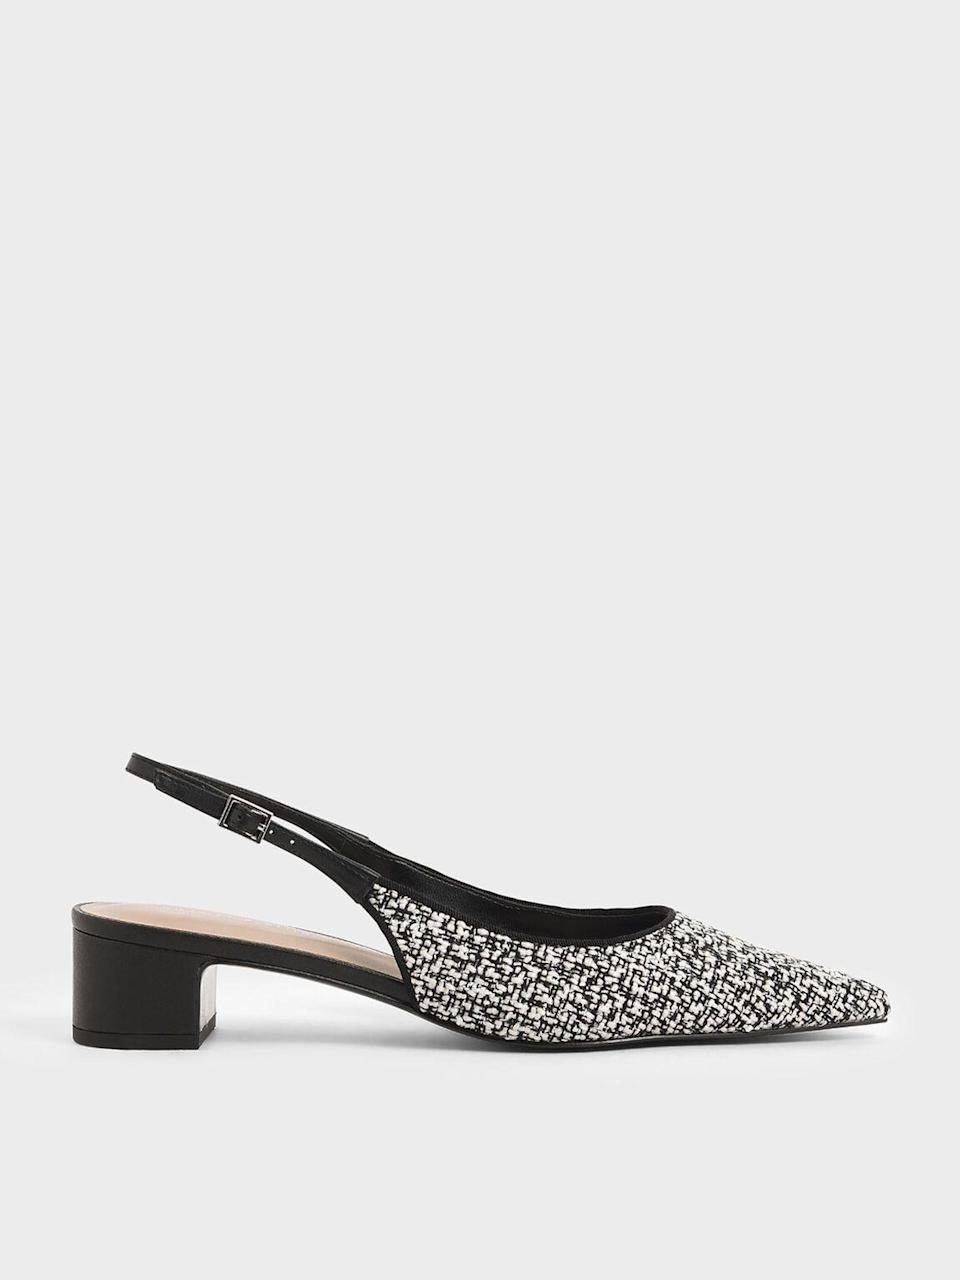 """<p><strong>Charles & Keith</strong></p><p>charleskeith.com</p><p><strong>$46.00</strong></p><p><a href=""""https://go.redirectingat.com?id=74968X1596630&url=https%3A%2F%2Fwww.charleskeith.com%2Fus%2FCK1-60920172_MULTI.html&sref=https%3A%2F%2Fwww.cosmopolitan.com%2Fstyle-beauty%2Ffashion%2Fg35017315%2F2021-shoe-trends%2F"""" rel=""""nofollow noopener"""" target=""""_blank"""" data-ylk=""""slk:Shop Now"""" class=""""link rapid-noclick-resp"""">Shop Now</a></p><p>A block shape will make you forget you're even wearing heels. </p>"""